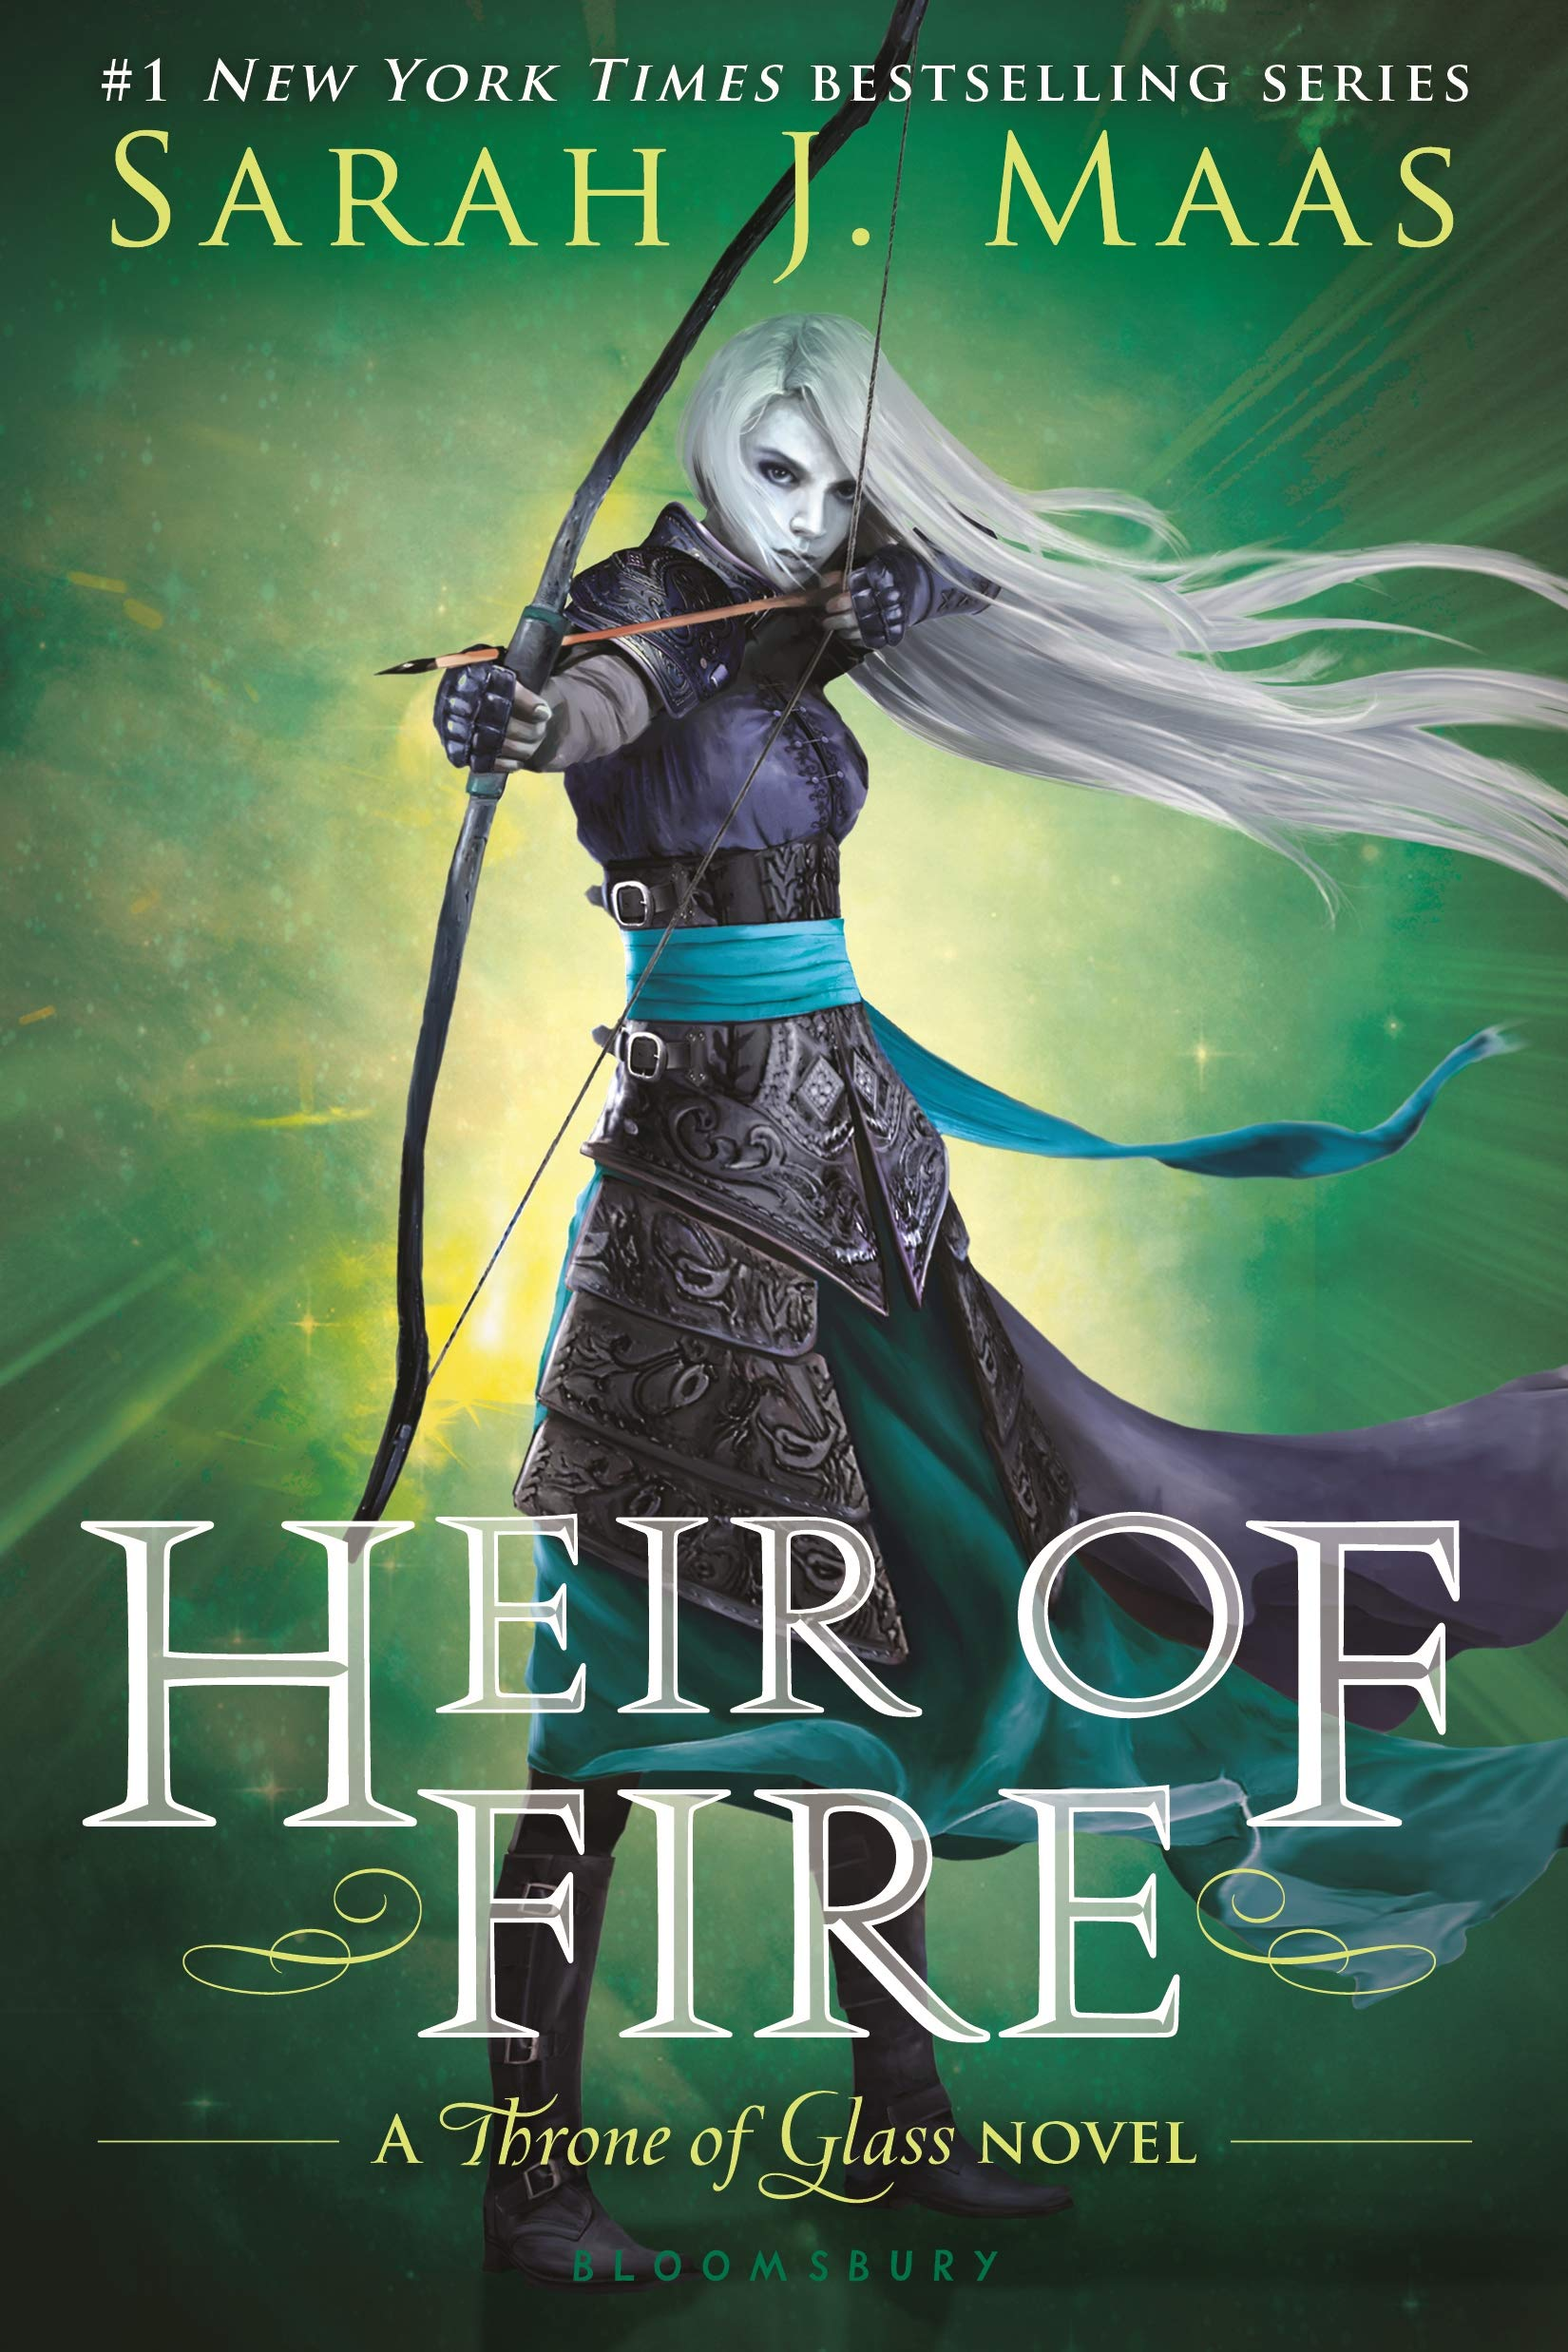 throne of glass order to read